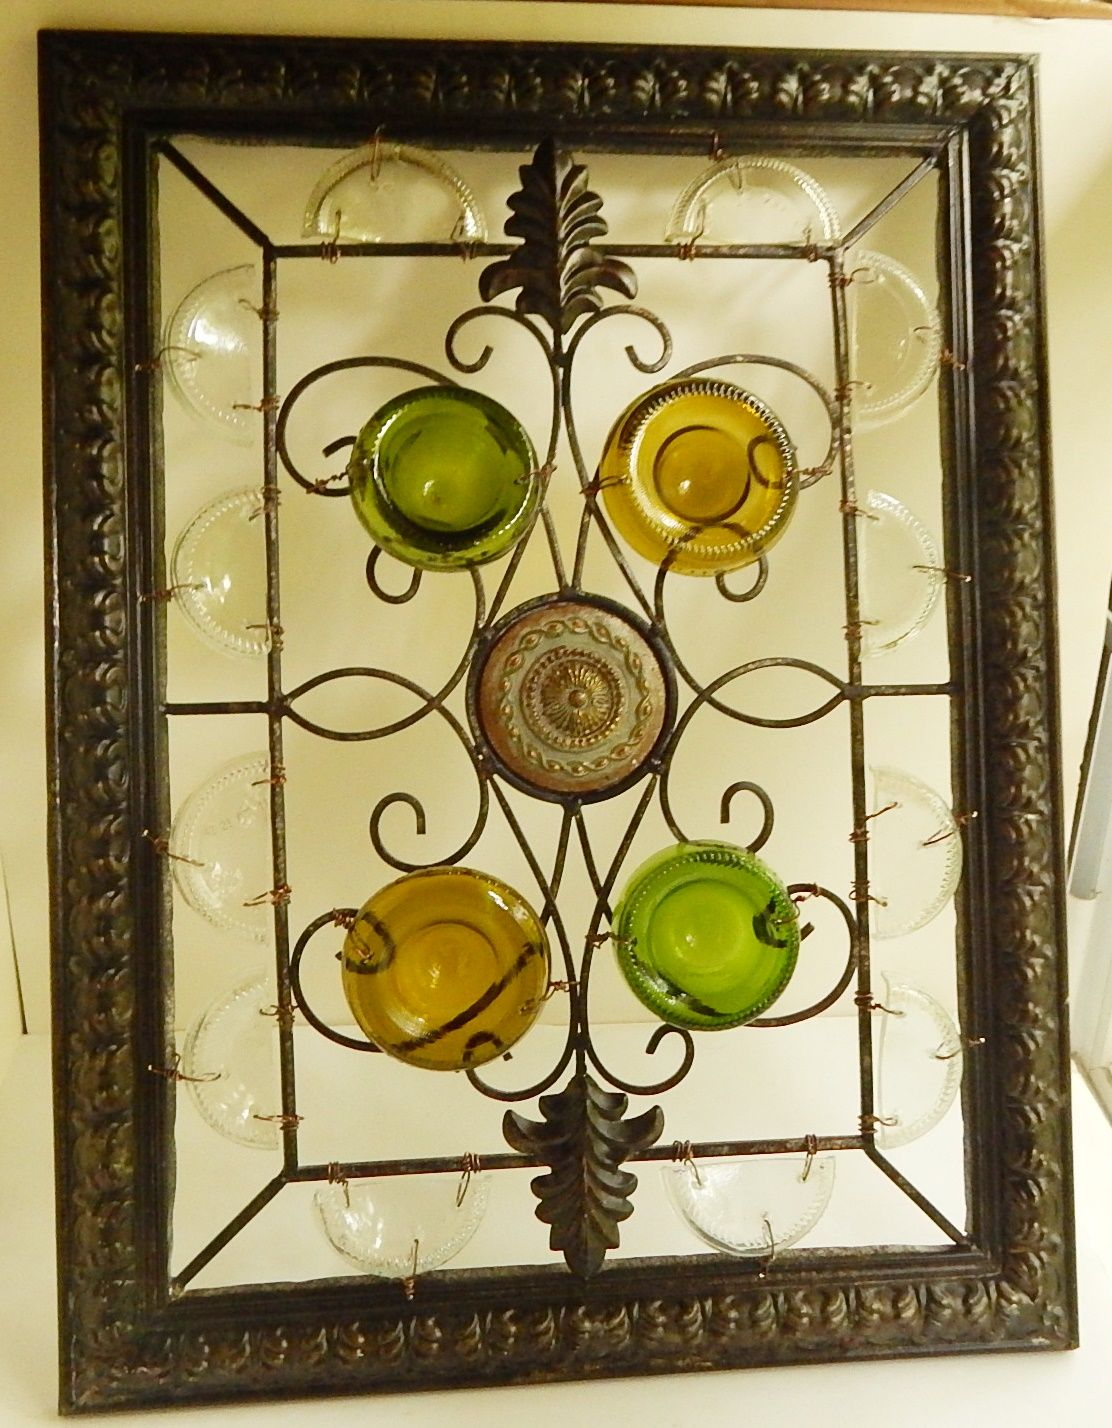 Wall Decor, Window Art, Recycled Glass, Wrought Iron Works - $85.00 ...